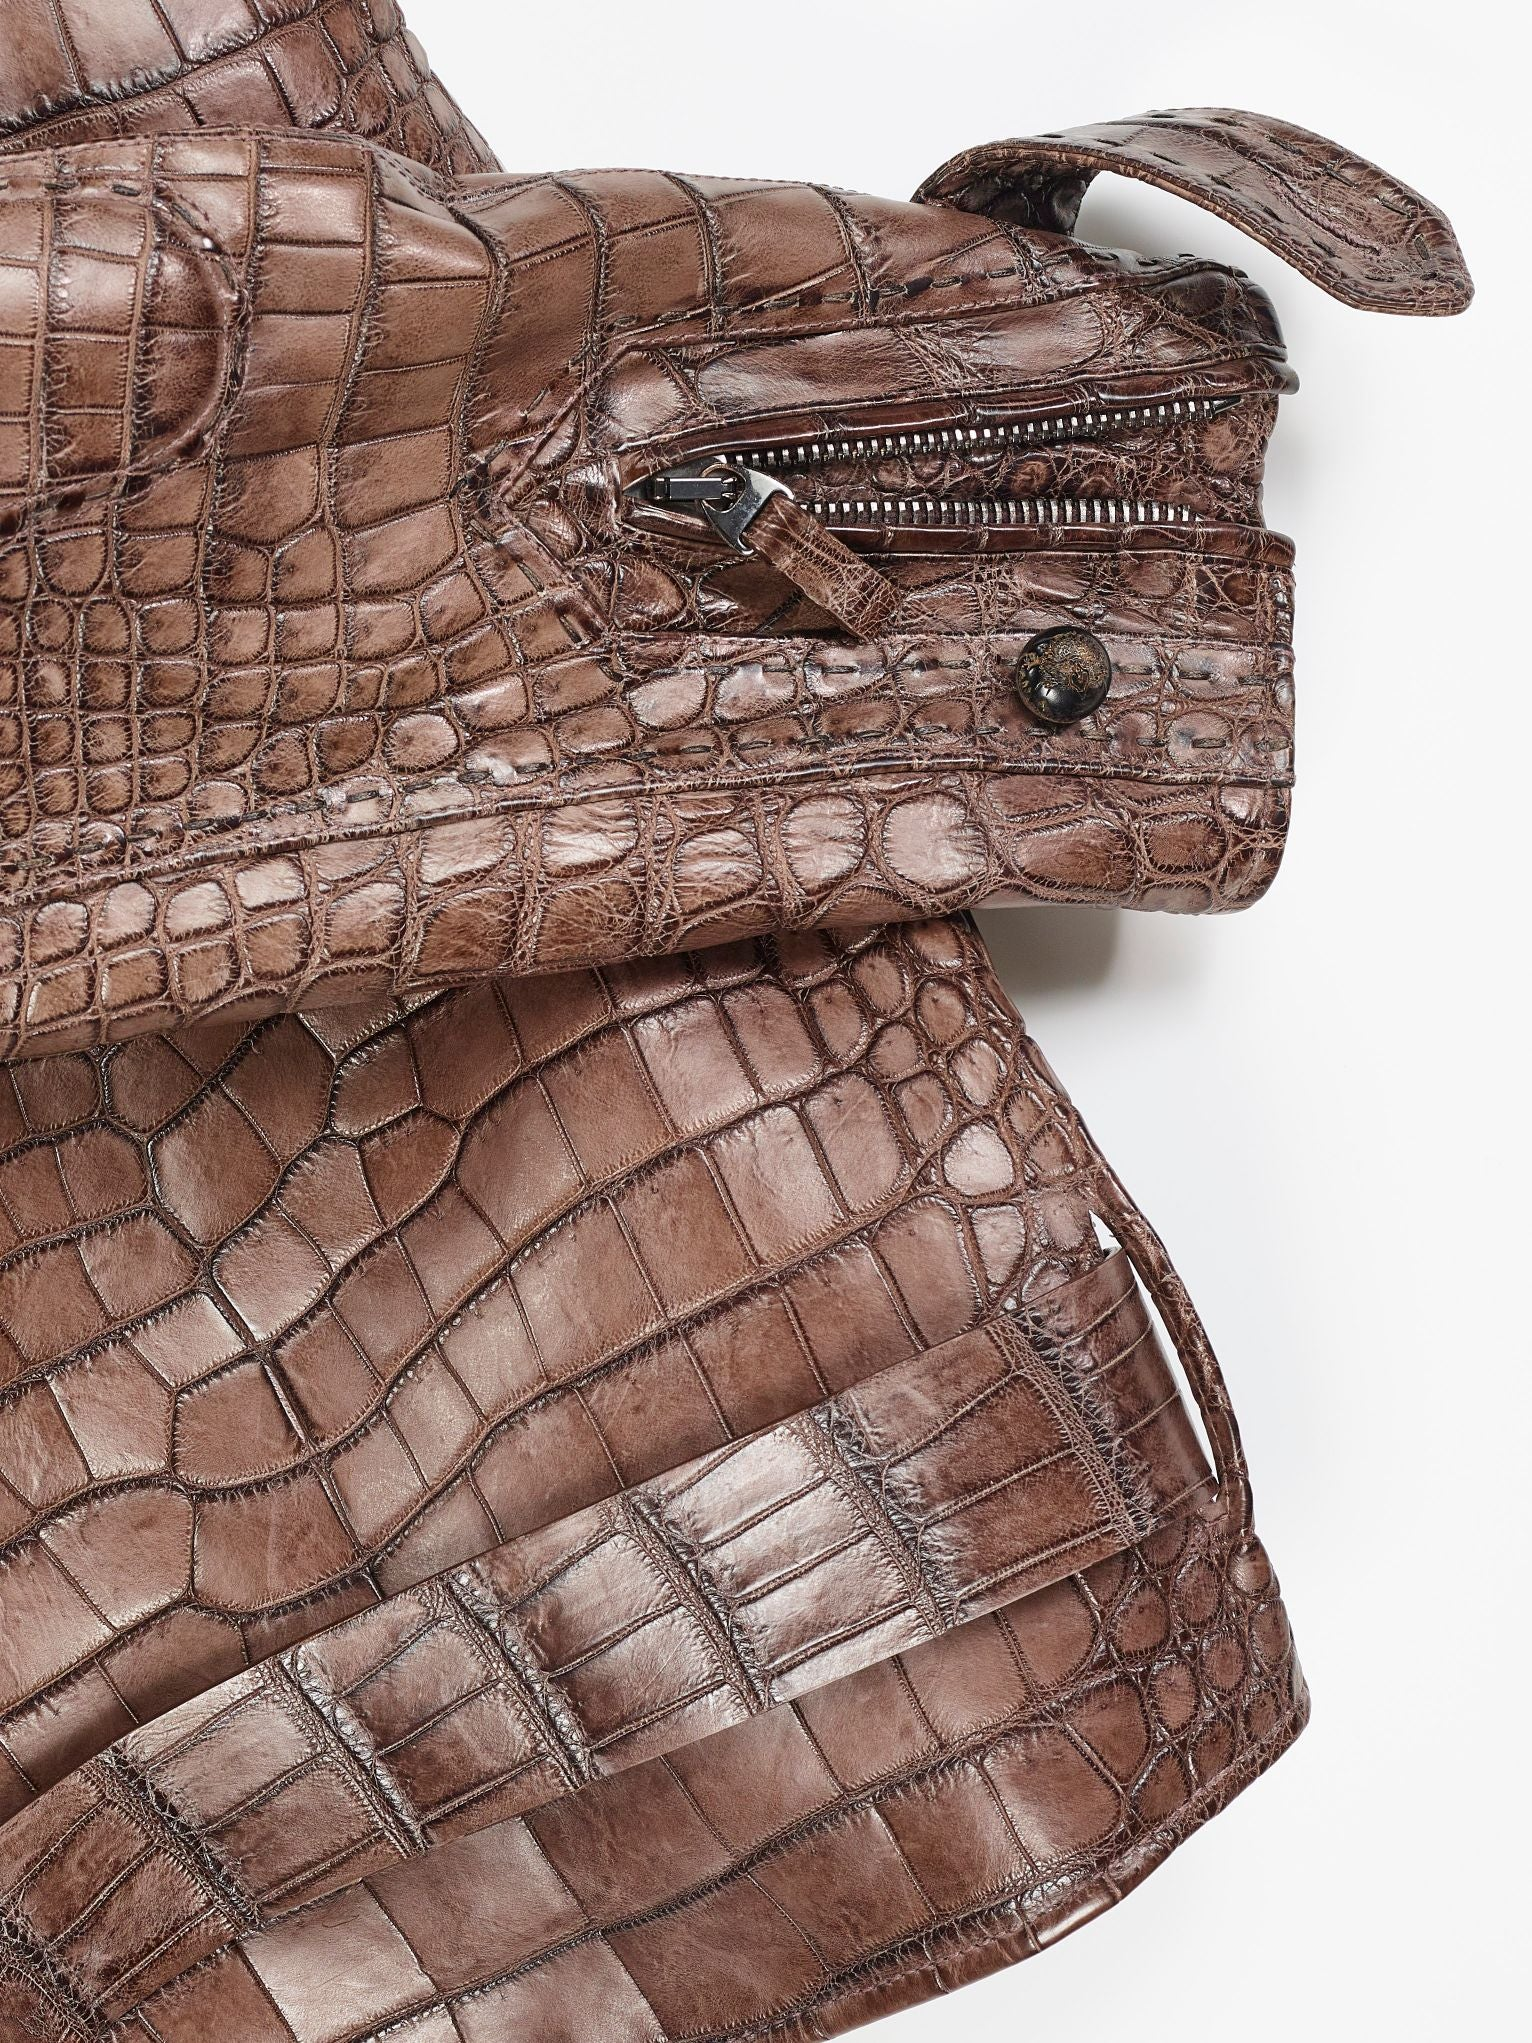 Each panel of the jacket is meticulously joined and often hand-stitched to perfectly match skin patterns